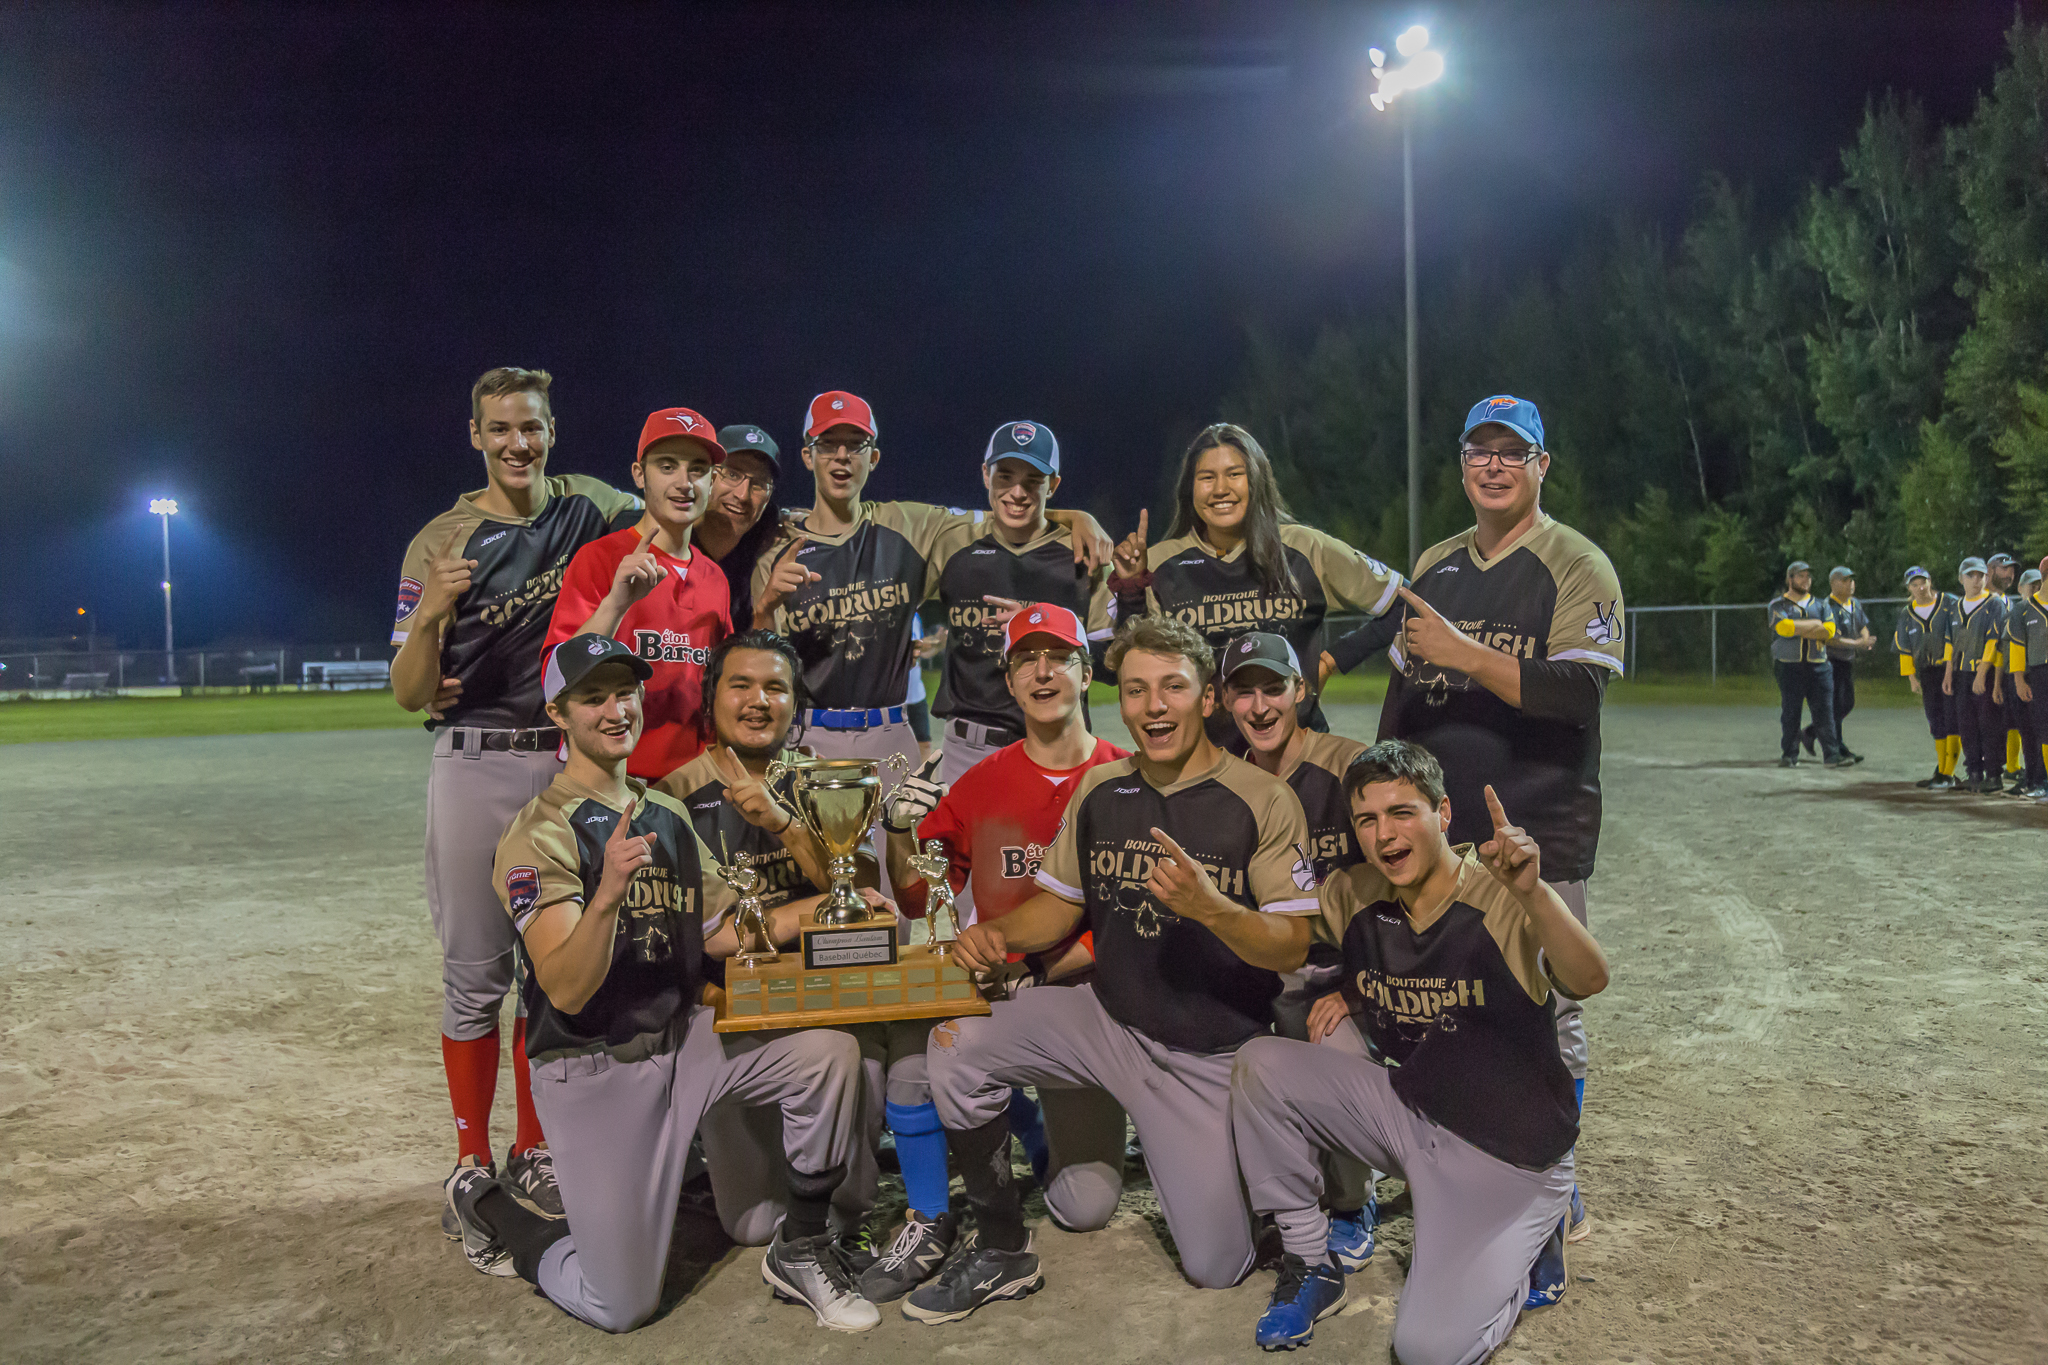 Baseball Val-d'Or - Val-d'Or Midget